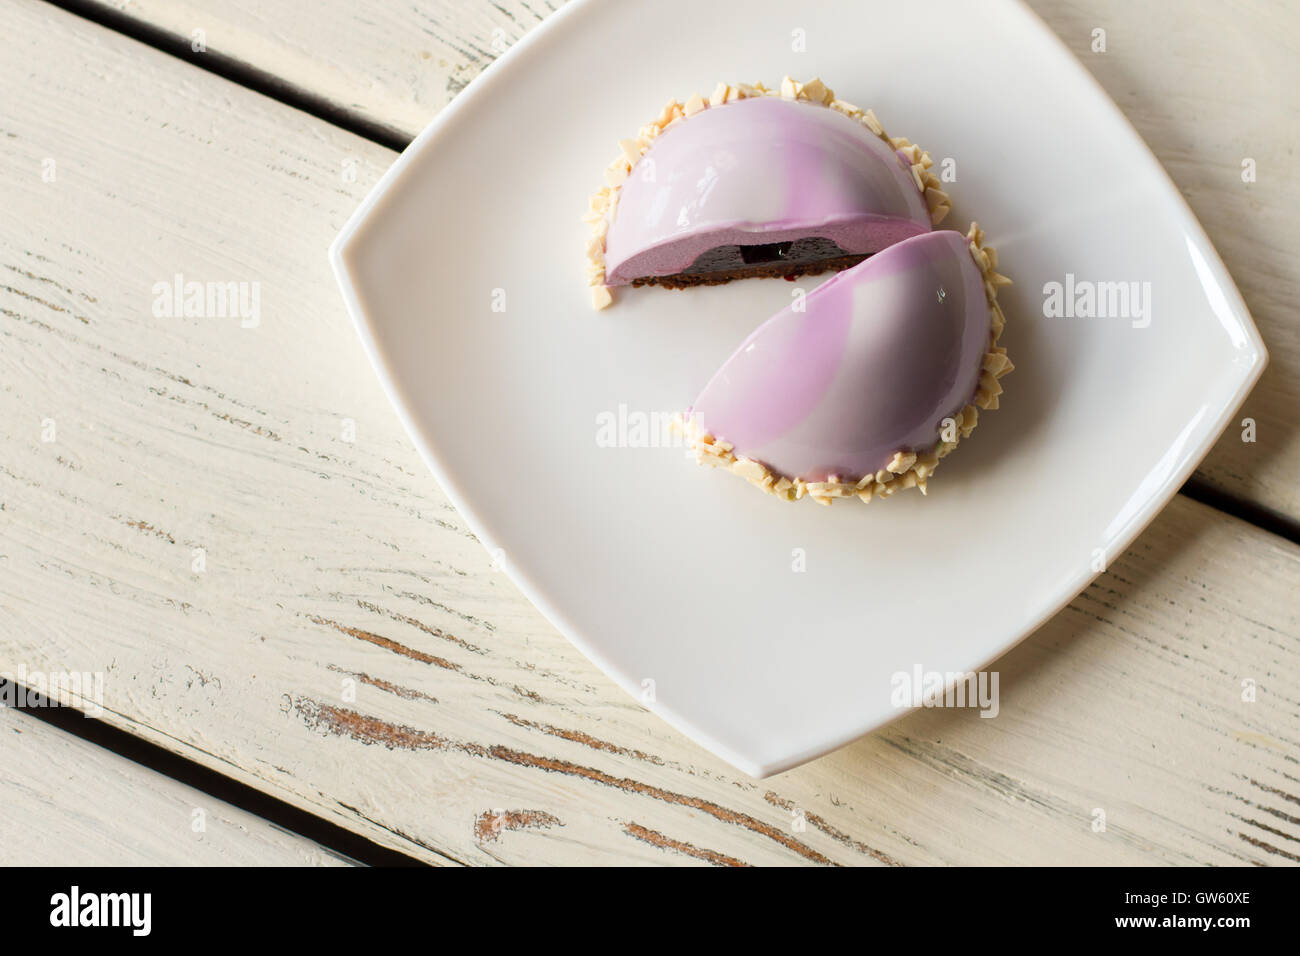 Top view of small cake. - Stock Image